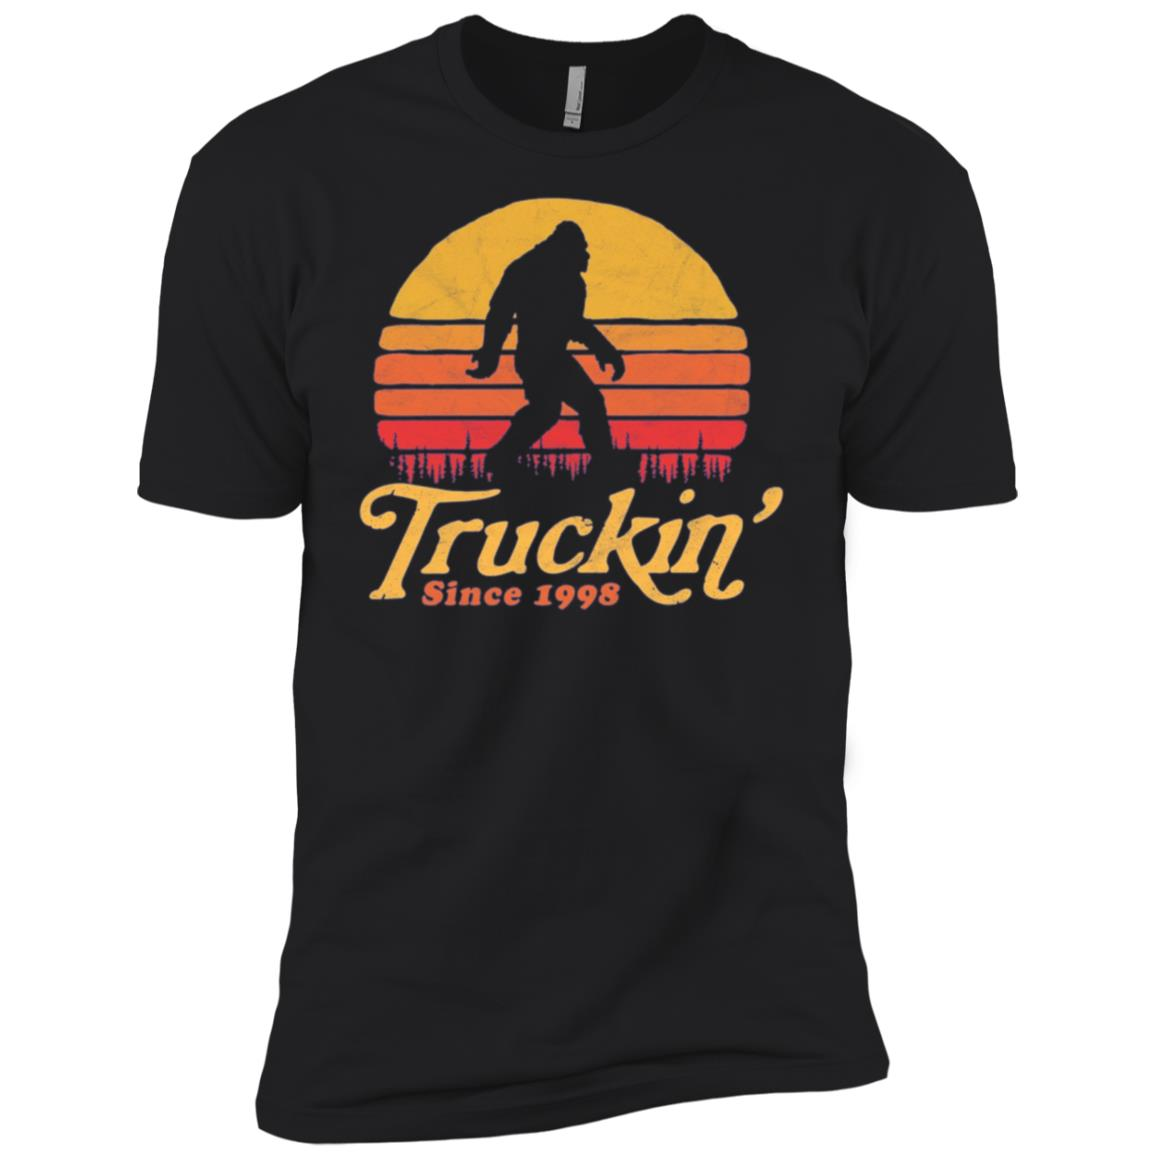 Truckin' Since 1998 Bigfoot 20th Birthday Men Short Sleeve T-Shirt